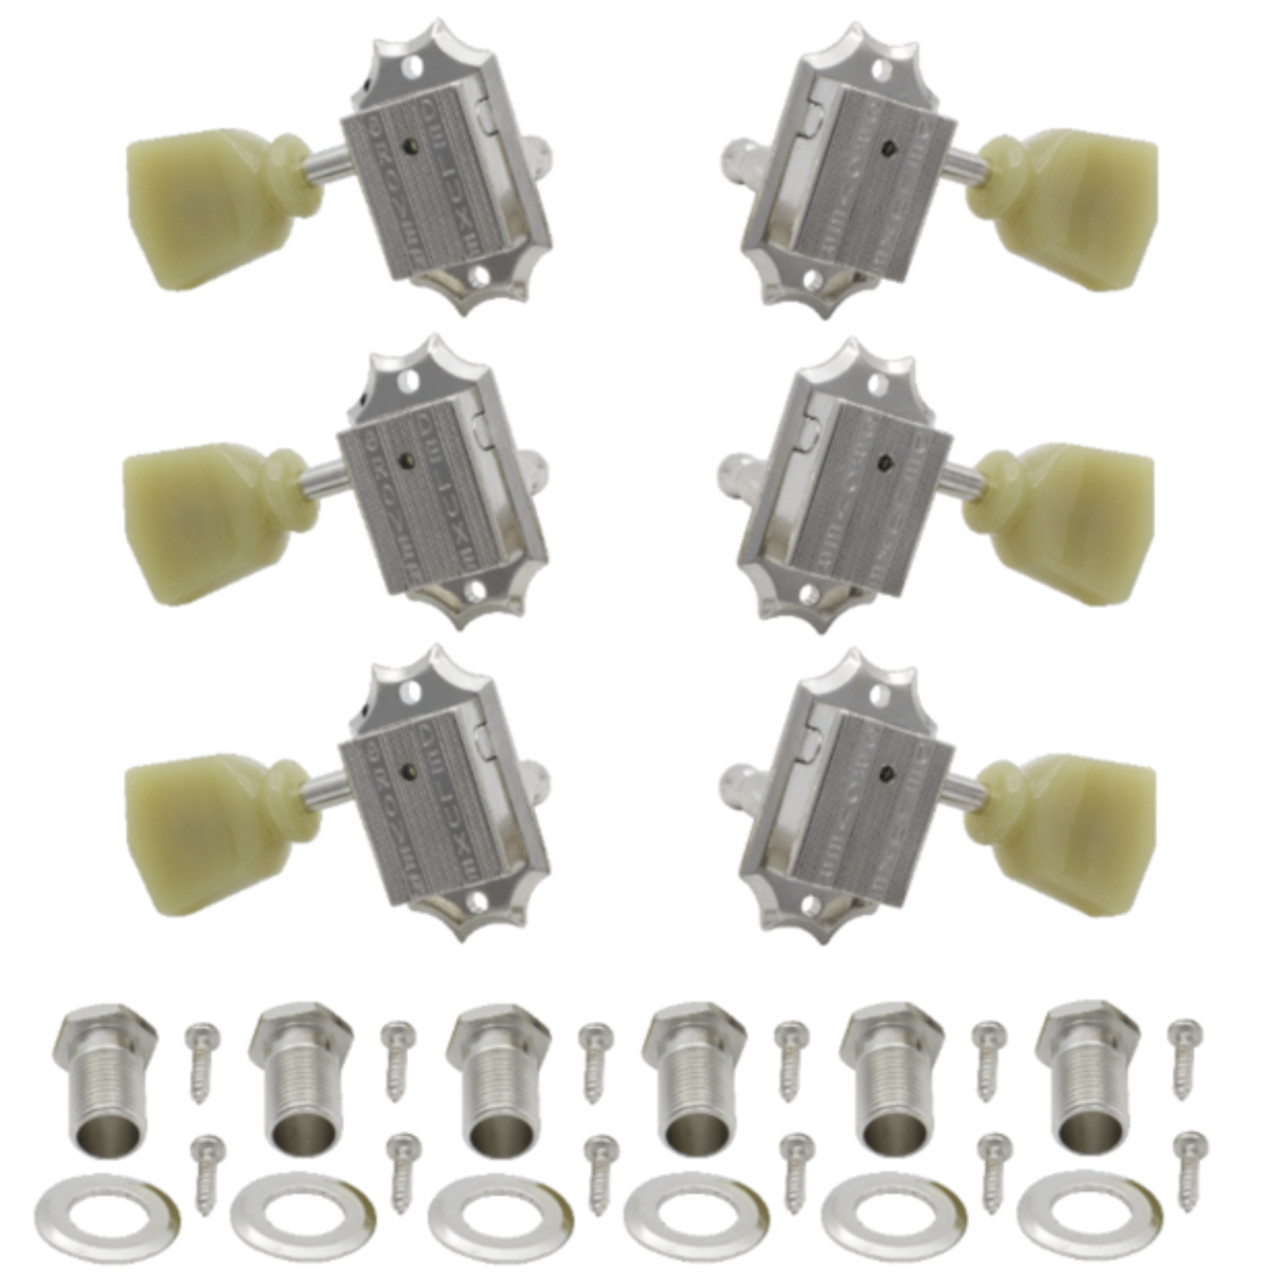 Grover Deluxe 135 Series Gibson Style 3x3 Guitar Tuning Keys-Nickel